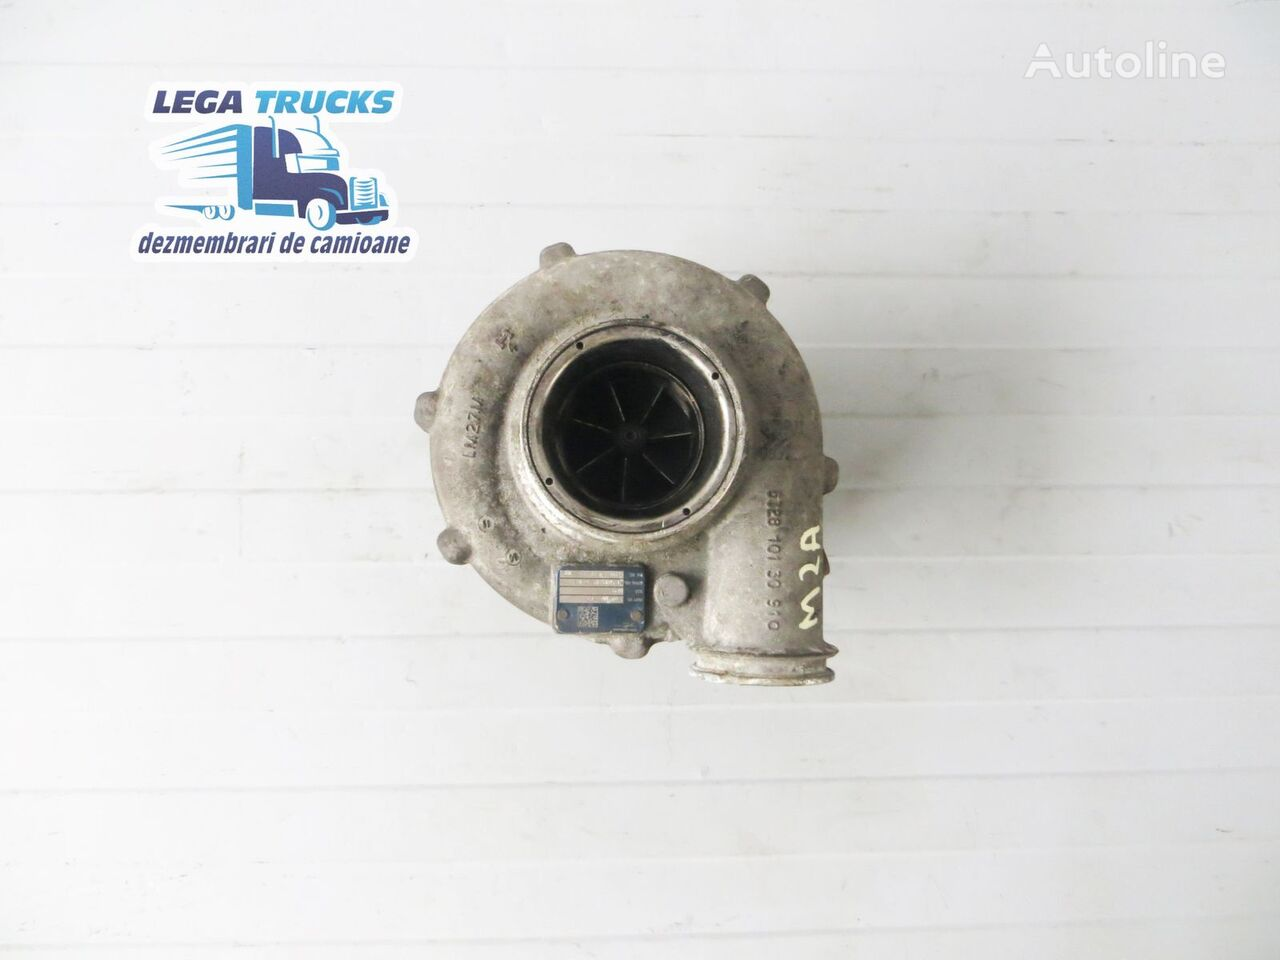 MAN engine turbocharger for tractor unit